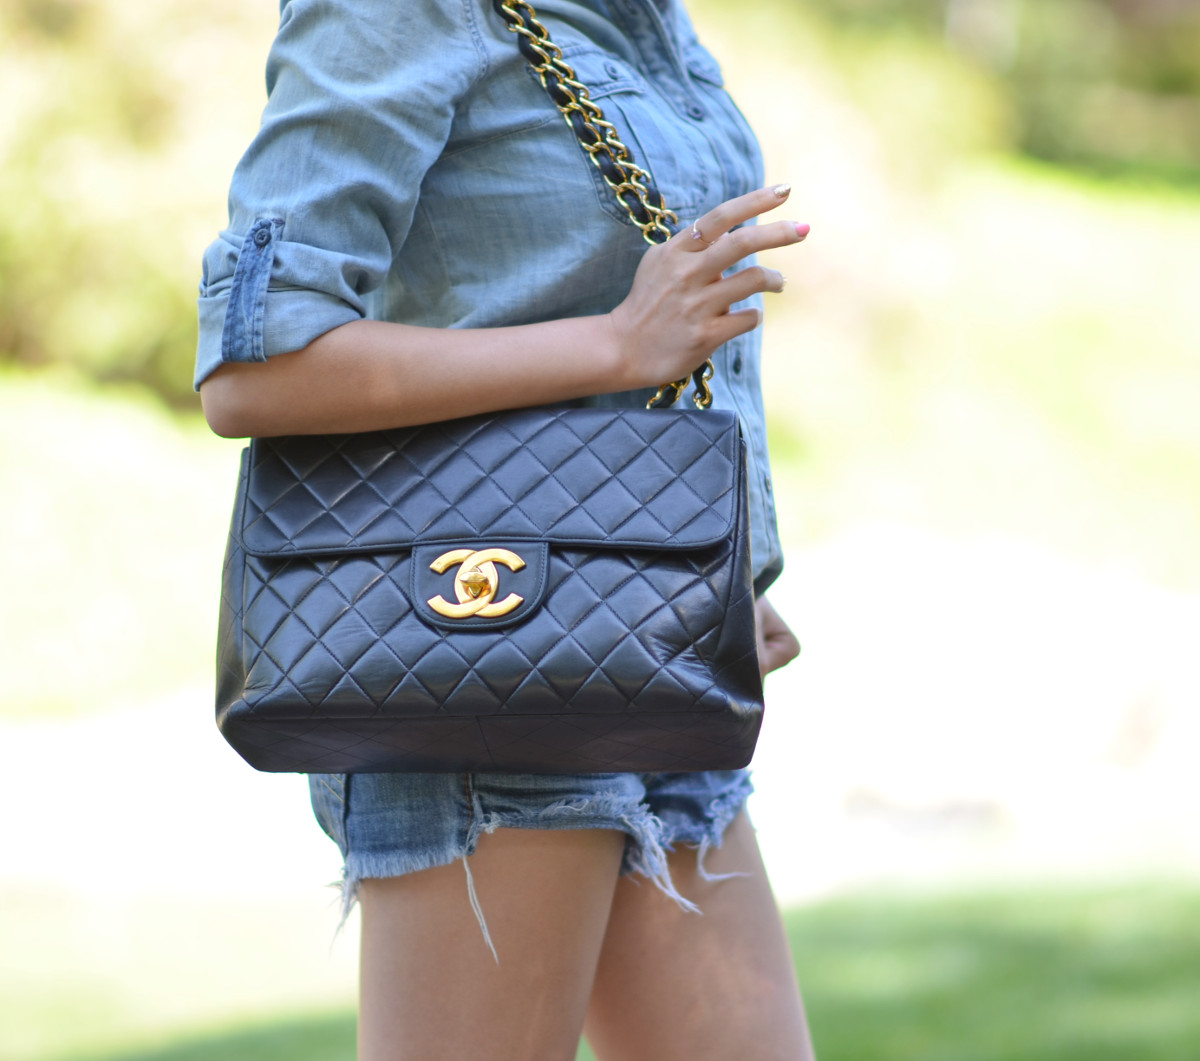 large Chanel jumbo quilted flap bag with large gold cc